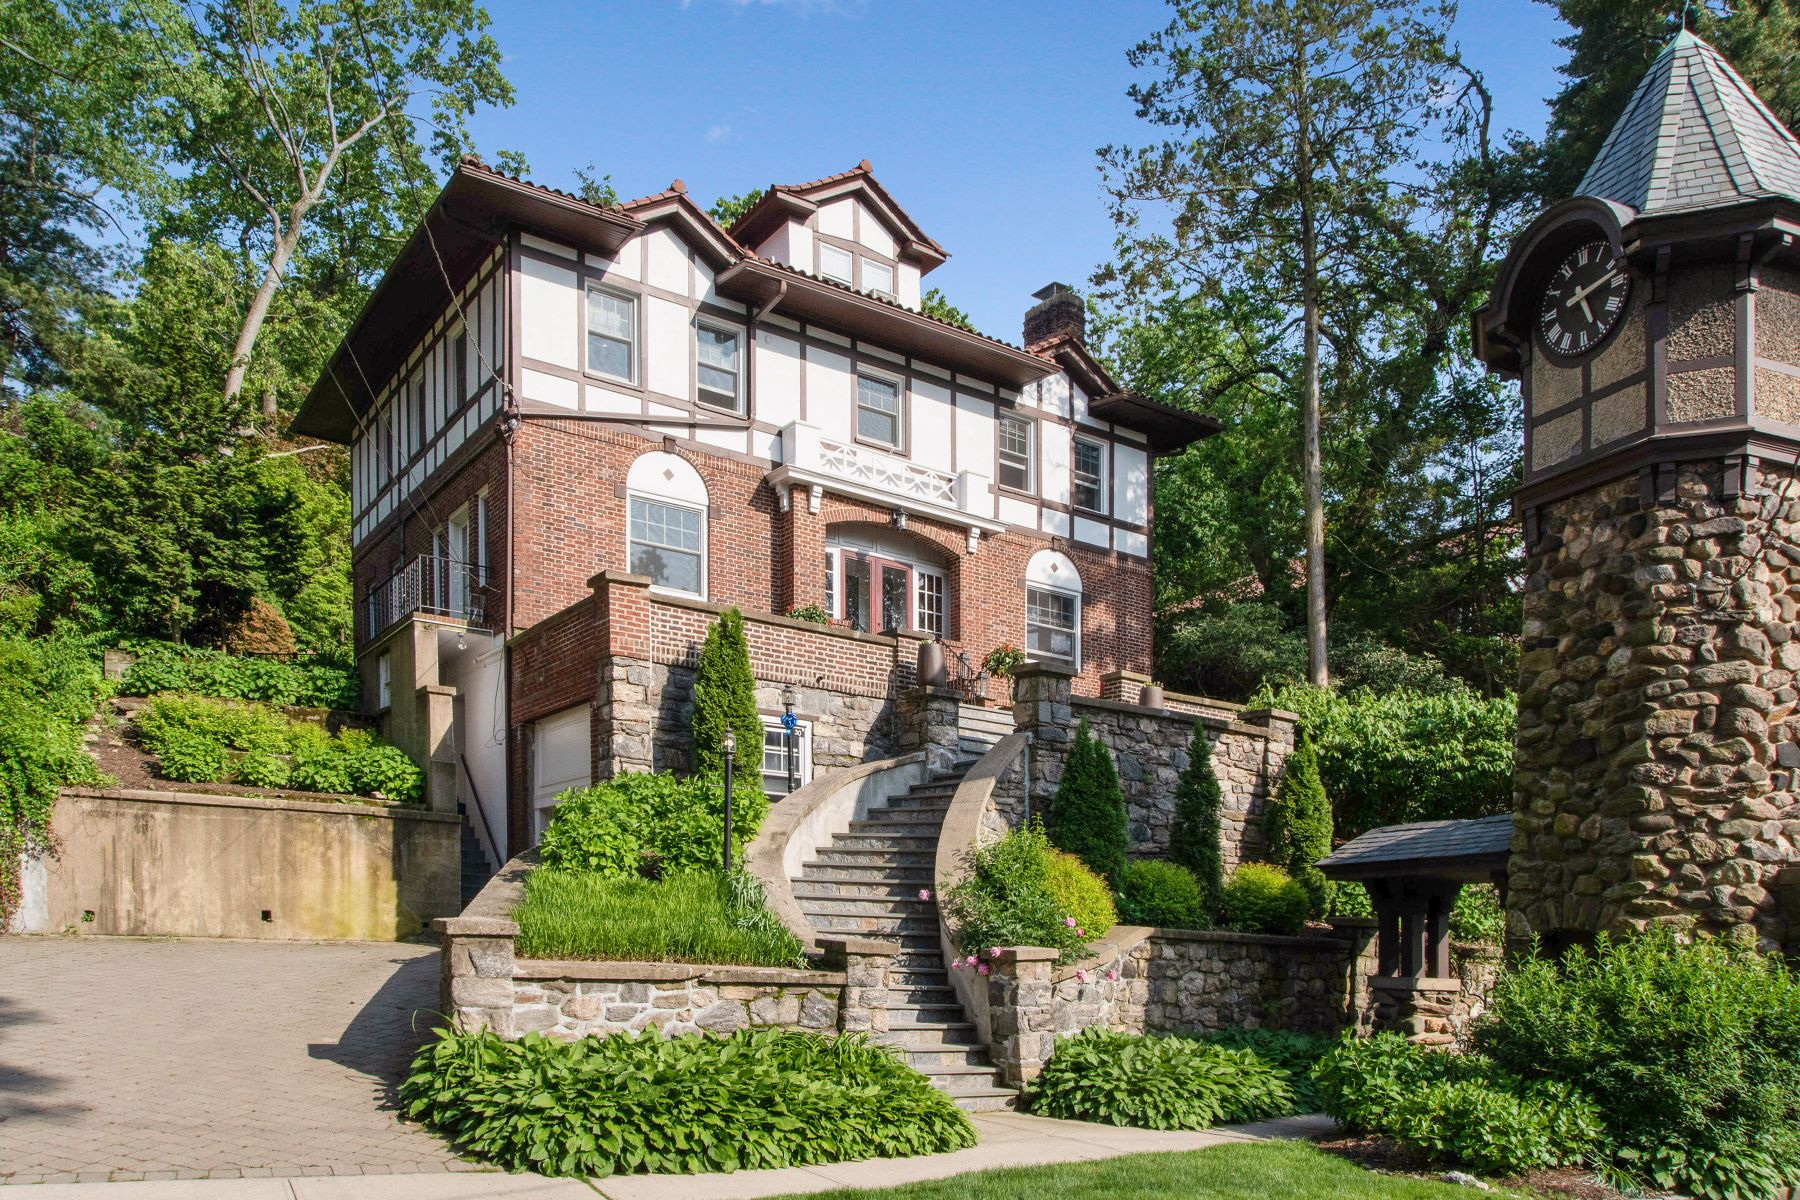 Single Family Homes for Active at Welcome To 30 Harmon Avenue 30 Harmon Avenue Pelham, New York 10803 United States